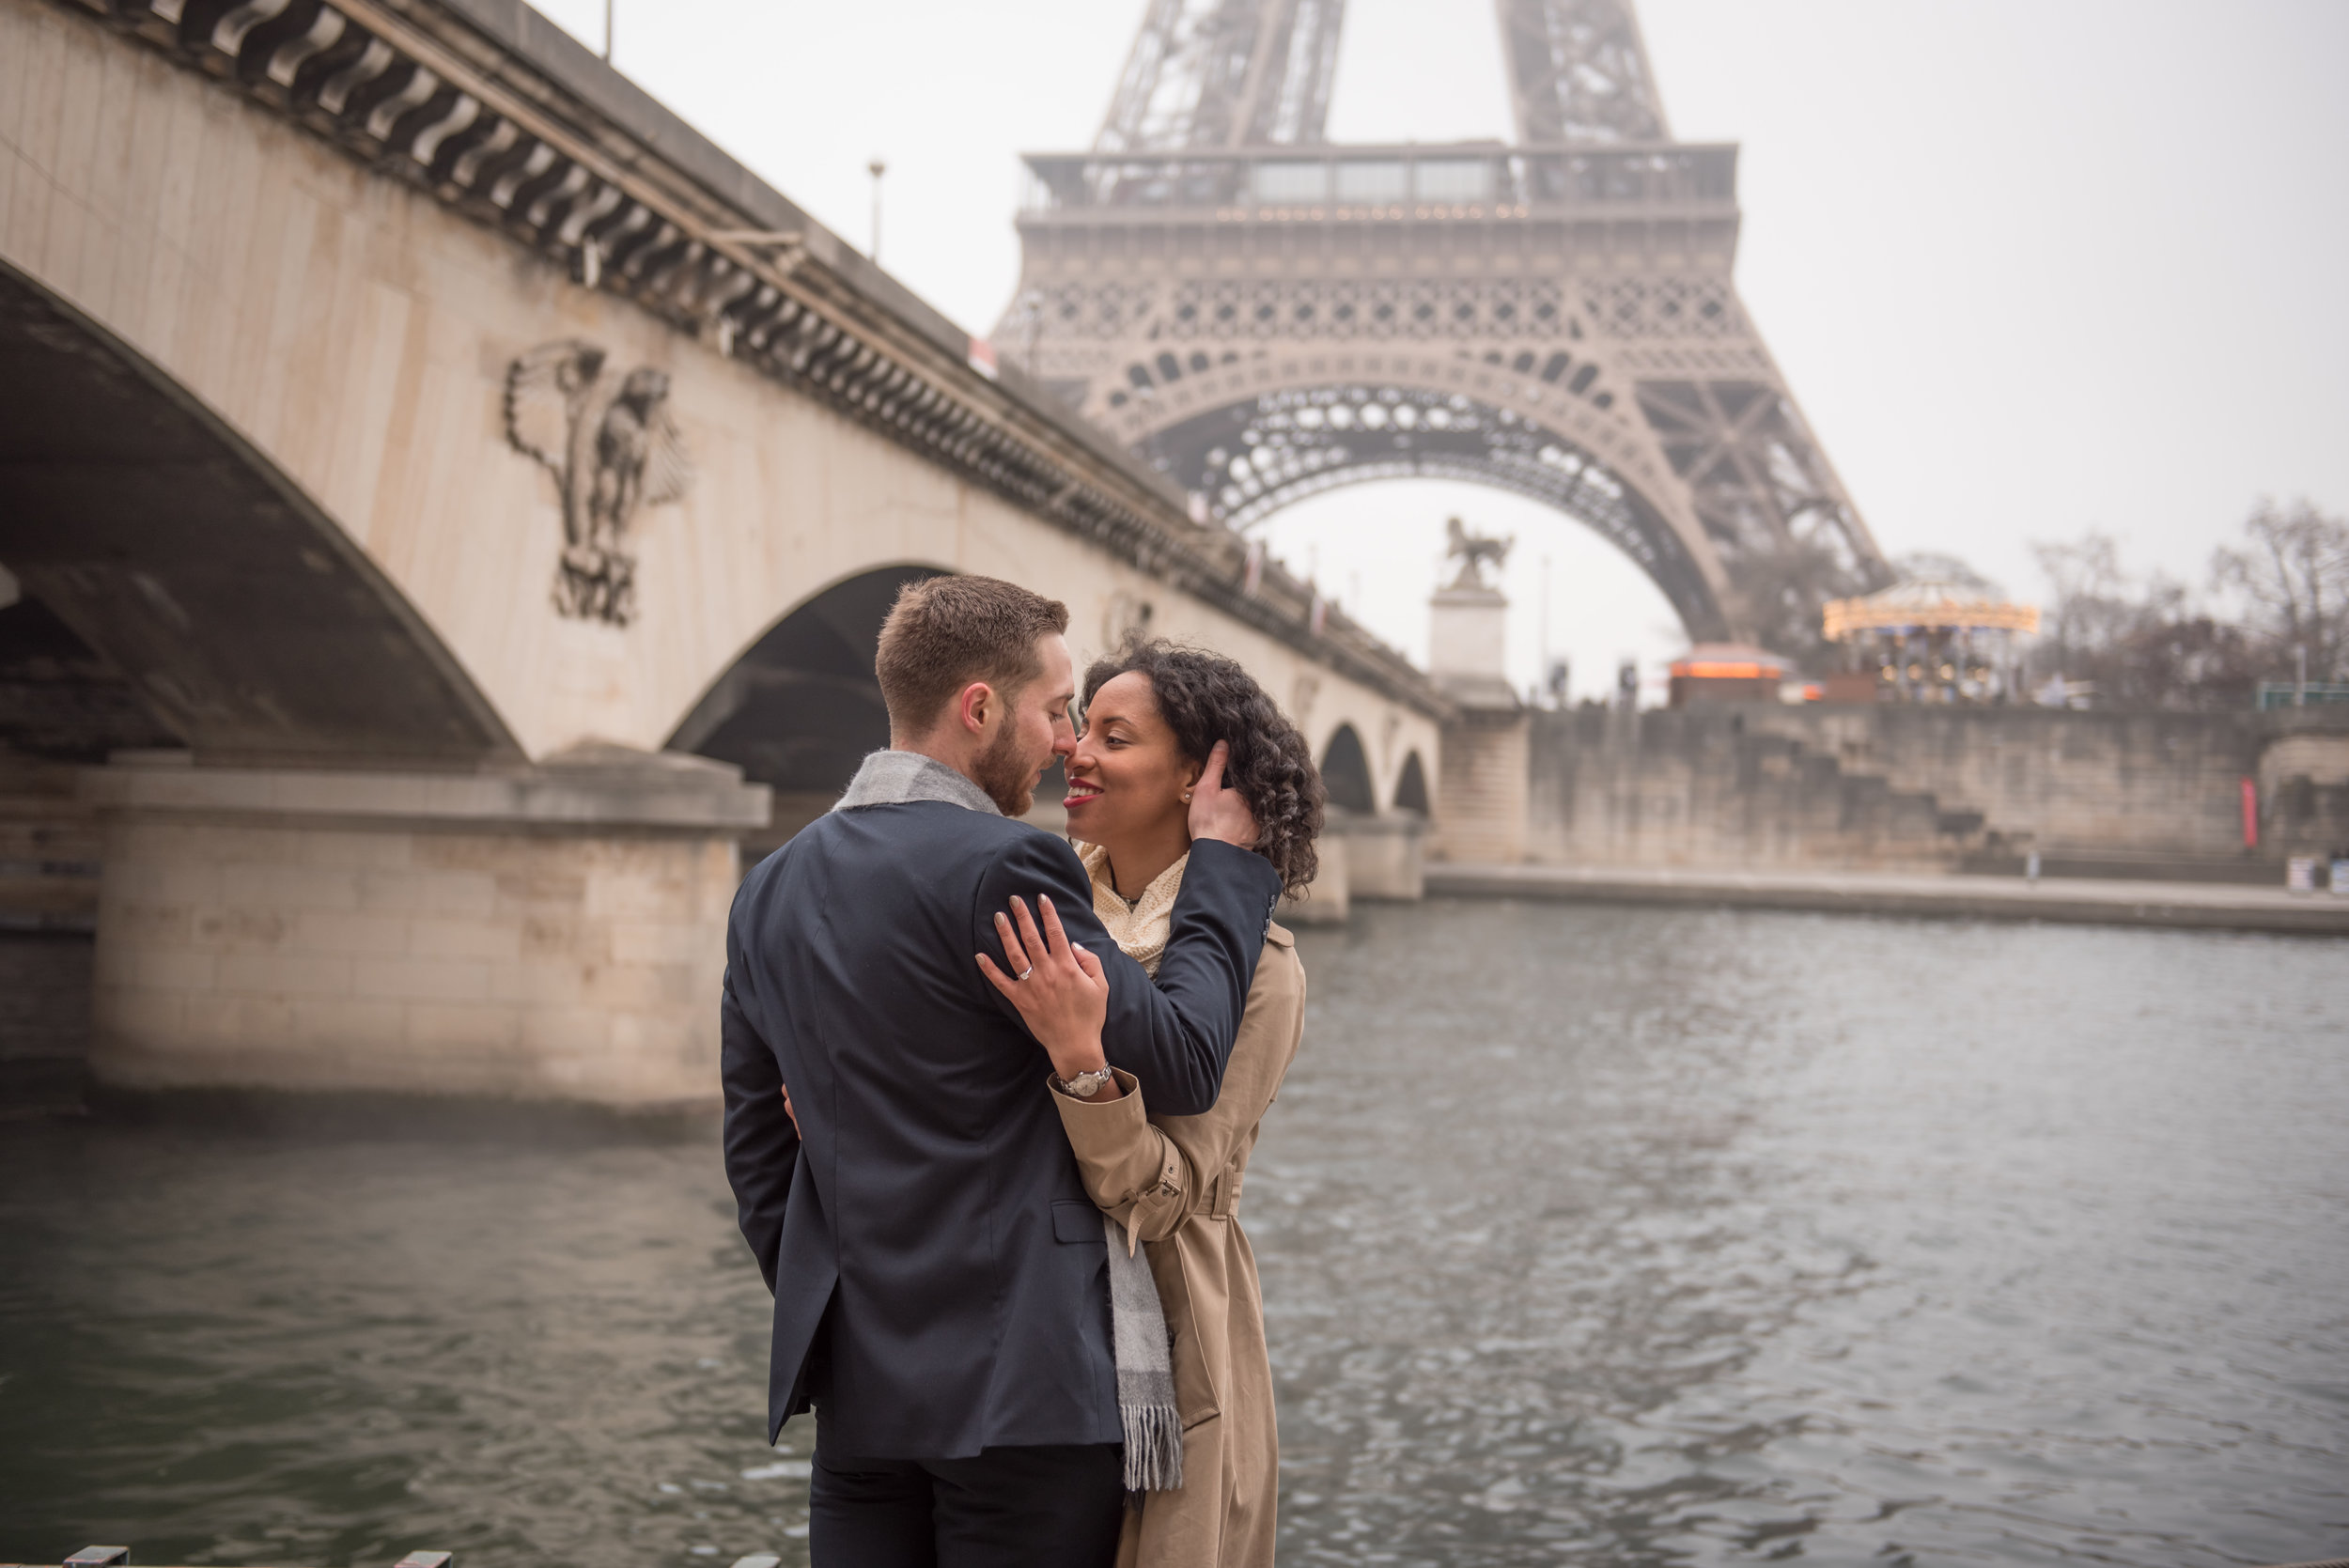 Copy of Copy of Paris photographer Shantha for engaged couples